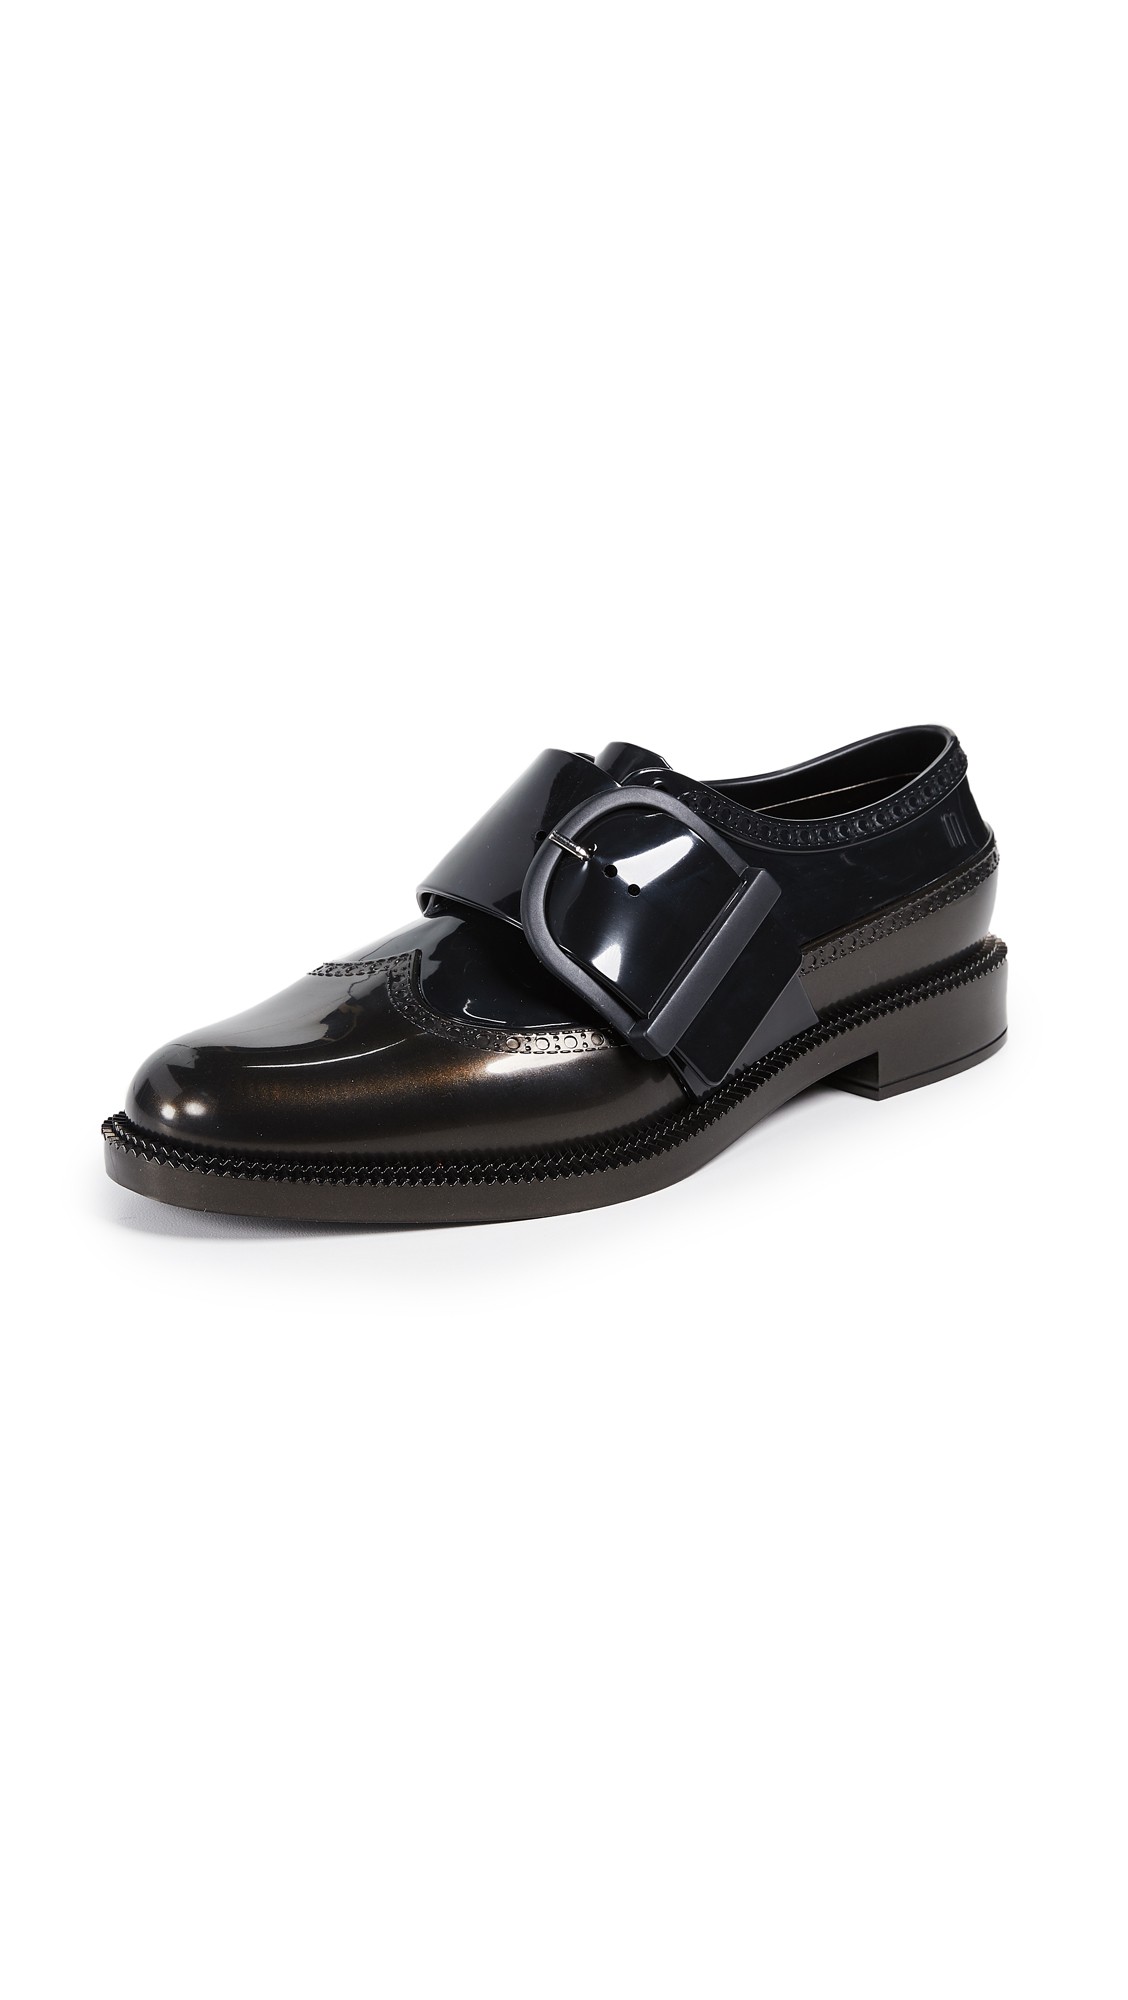 Melissa Classic Brogue Oxfords - Black Bow